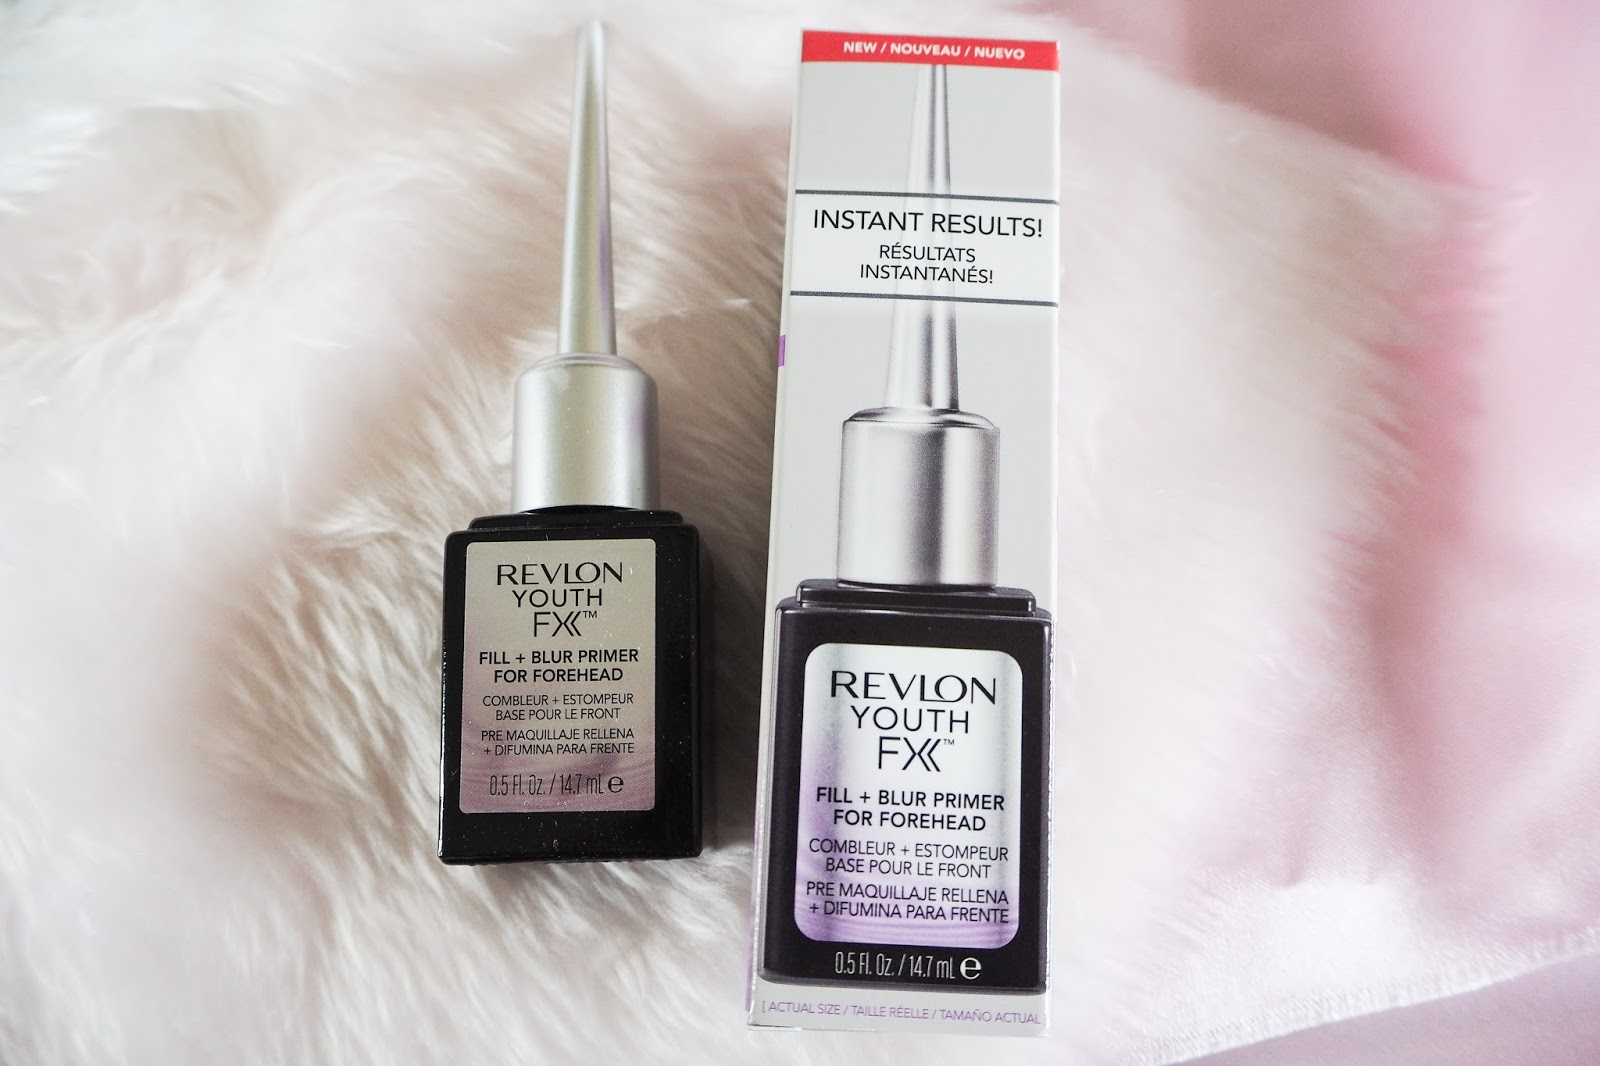 Revlon Youth Fix Fill and Blur Primer for Forehead Review